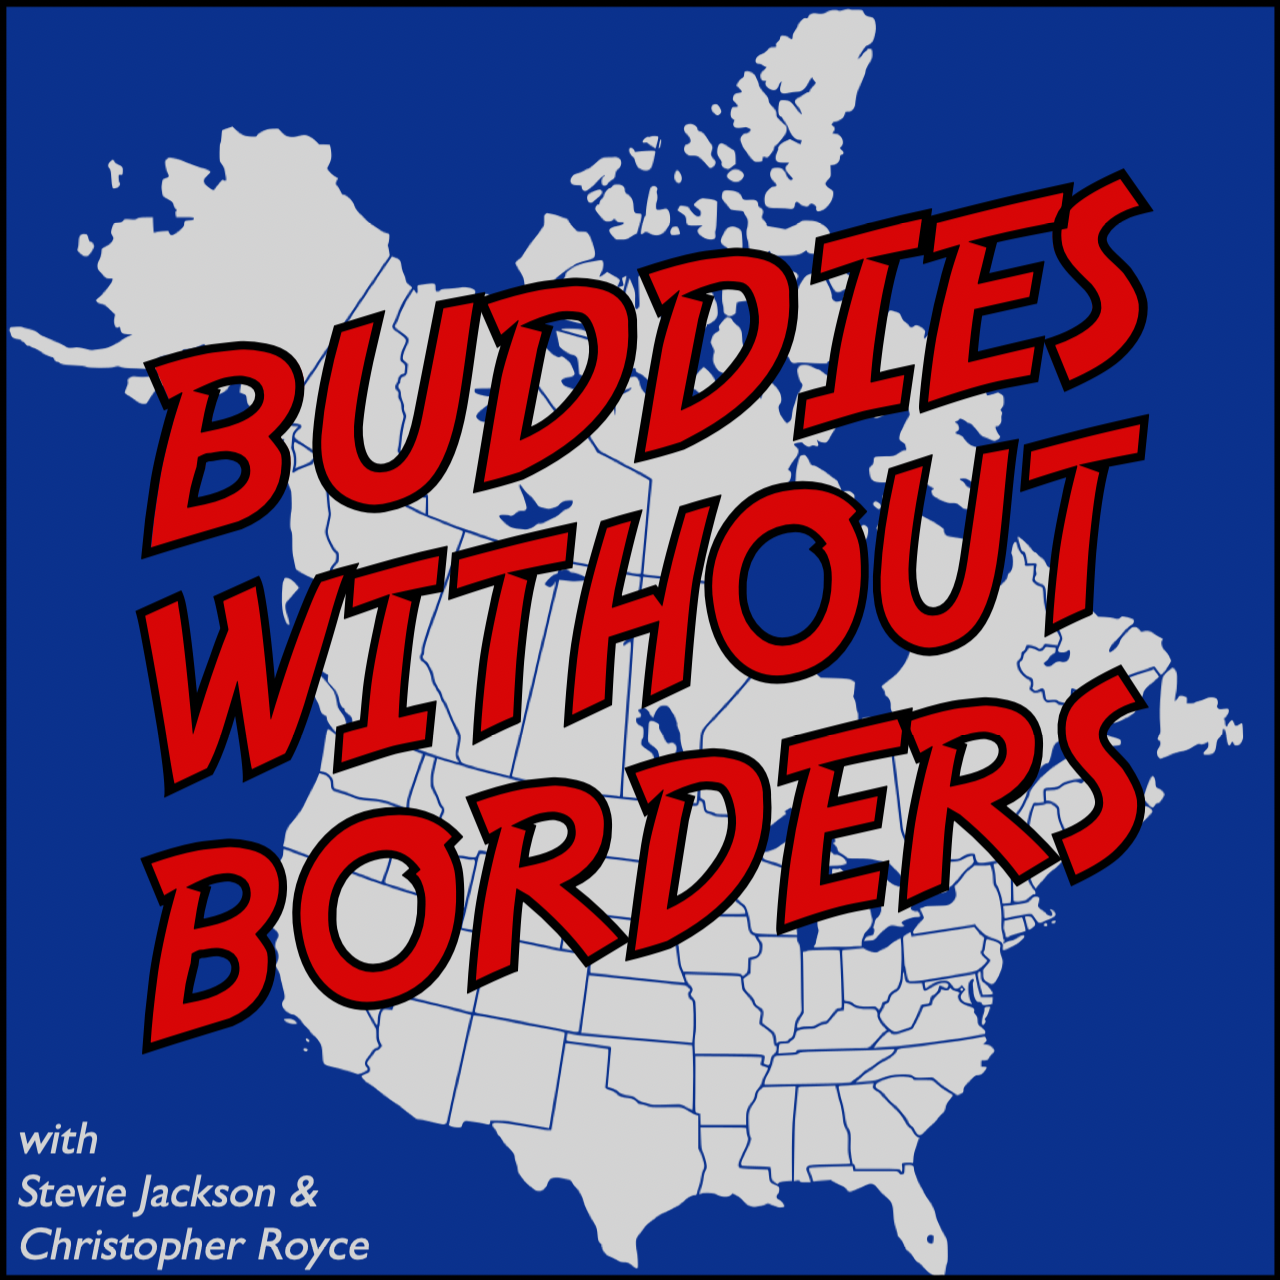 Artwork for Introducing Buddies Without Borders!